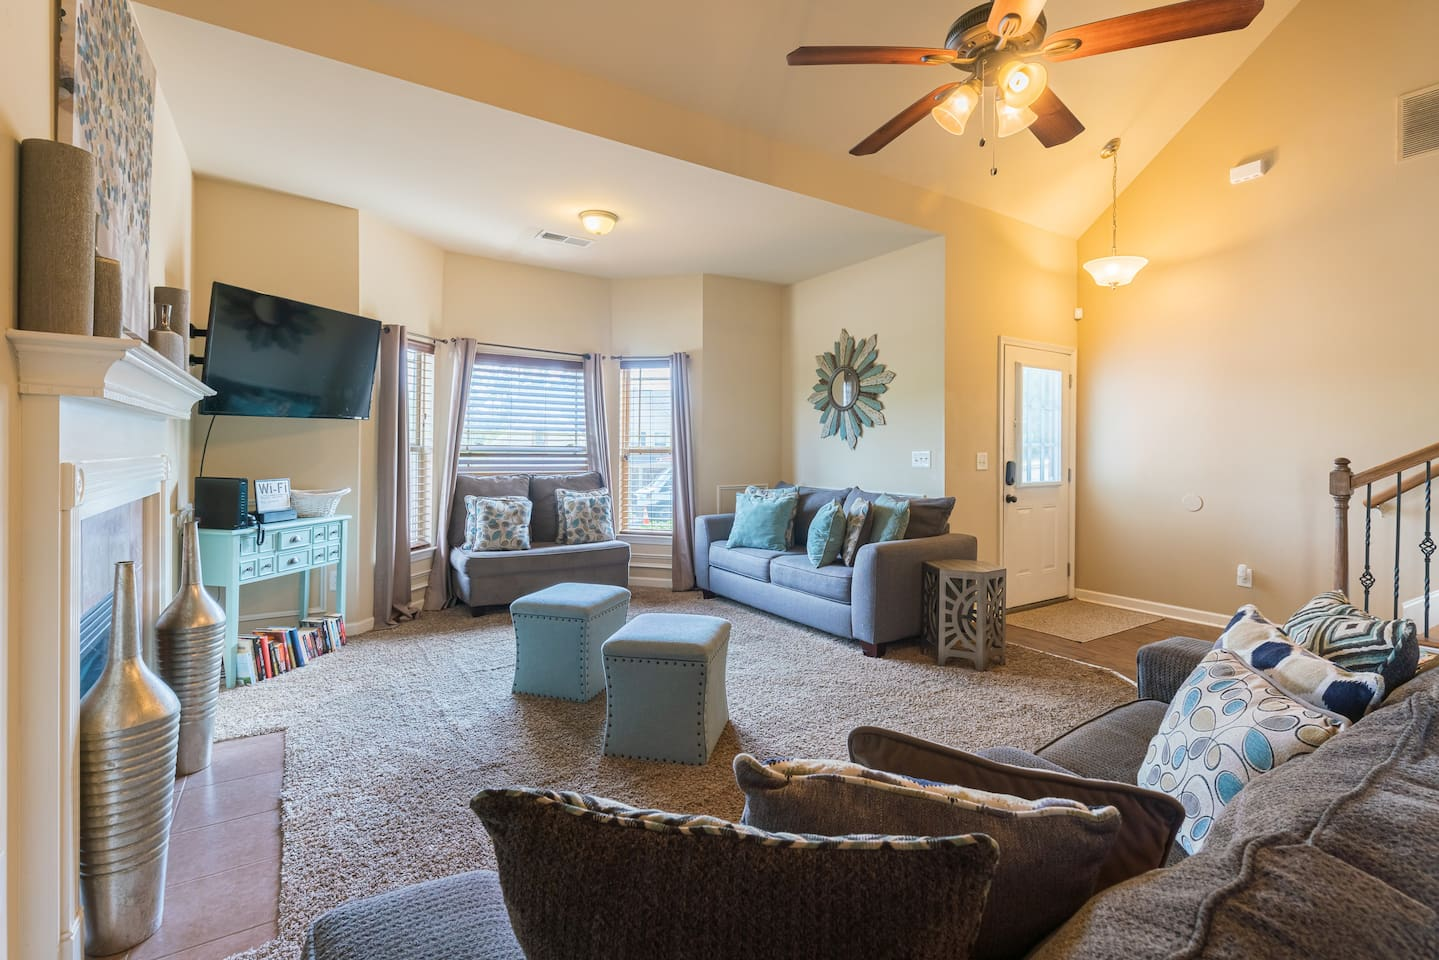 Cozy and comfortable living room. Great for a family gathering for movies or team meetings to cast to the TV for lectures and learning.